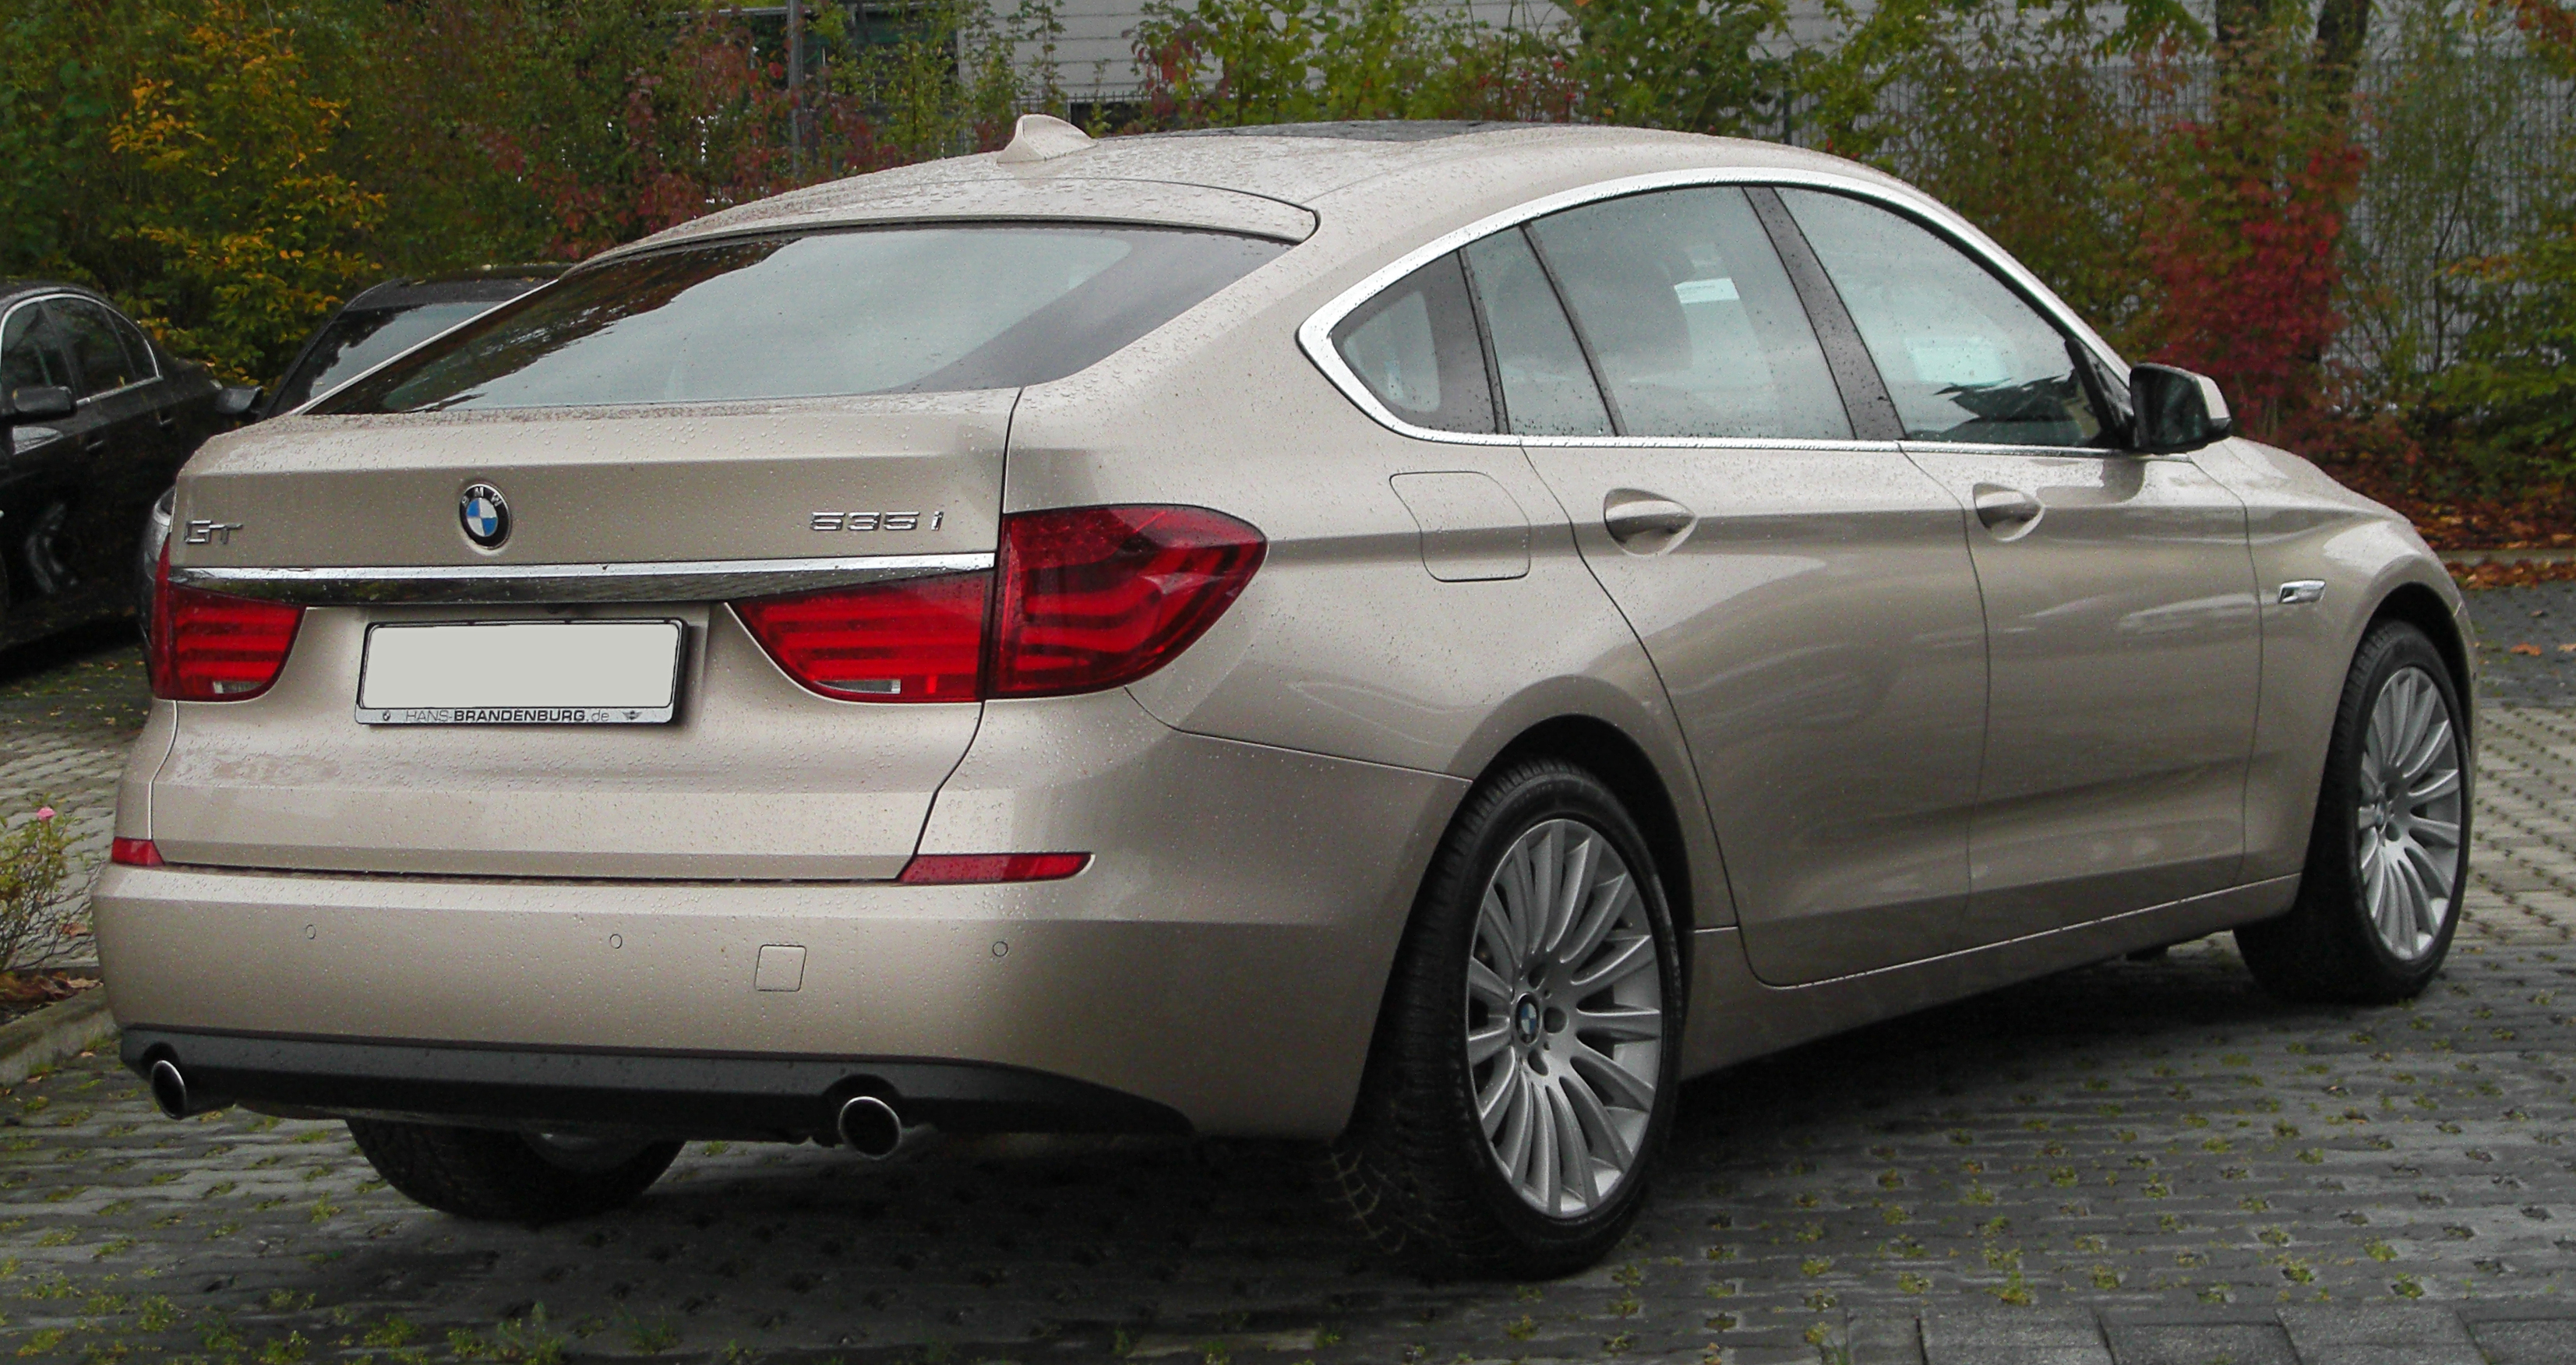 FileBMW I GT F Rear Jpg Wikimedia Commons - 535 gt bmw